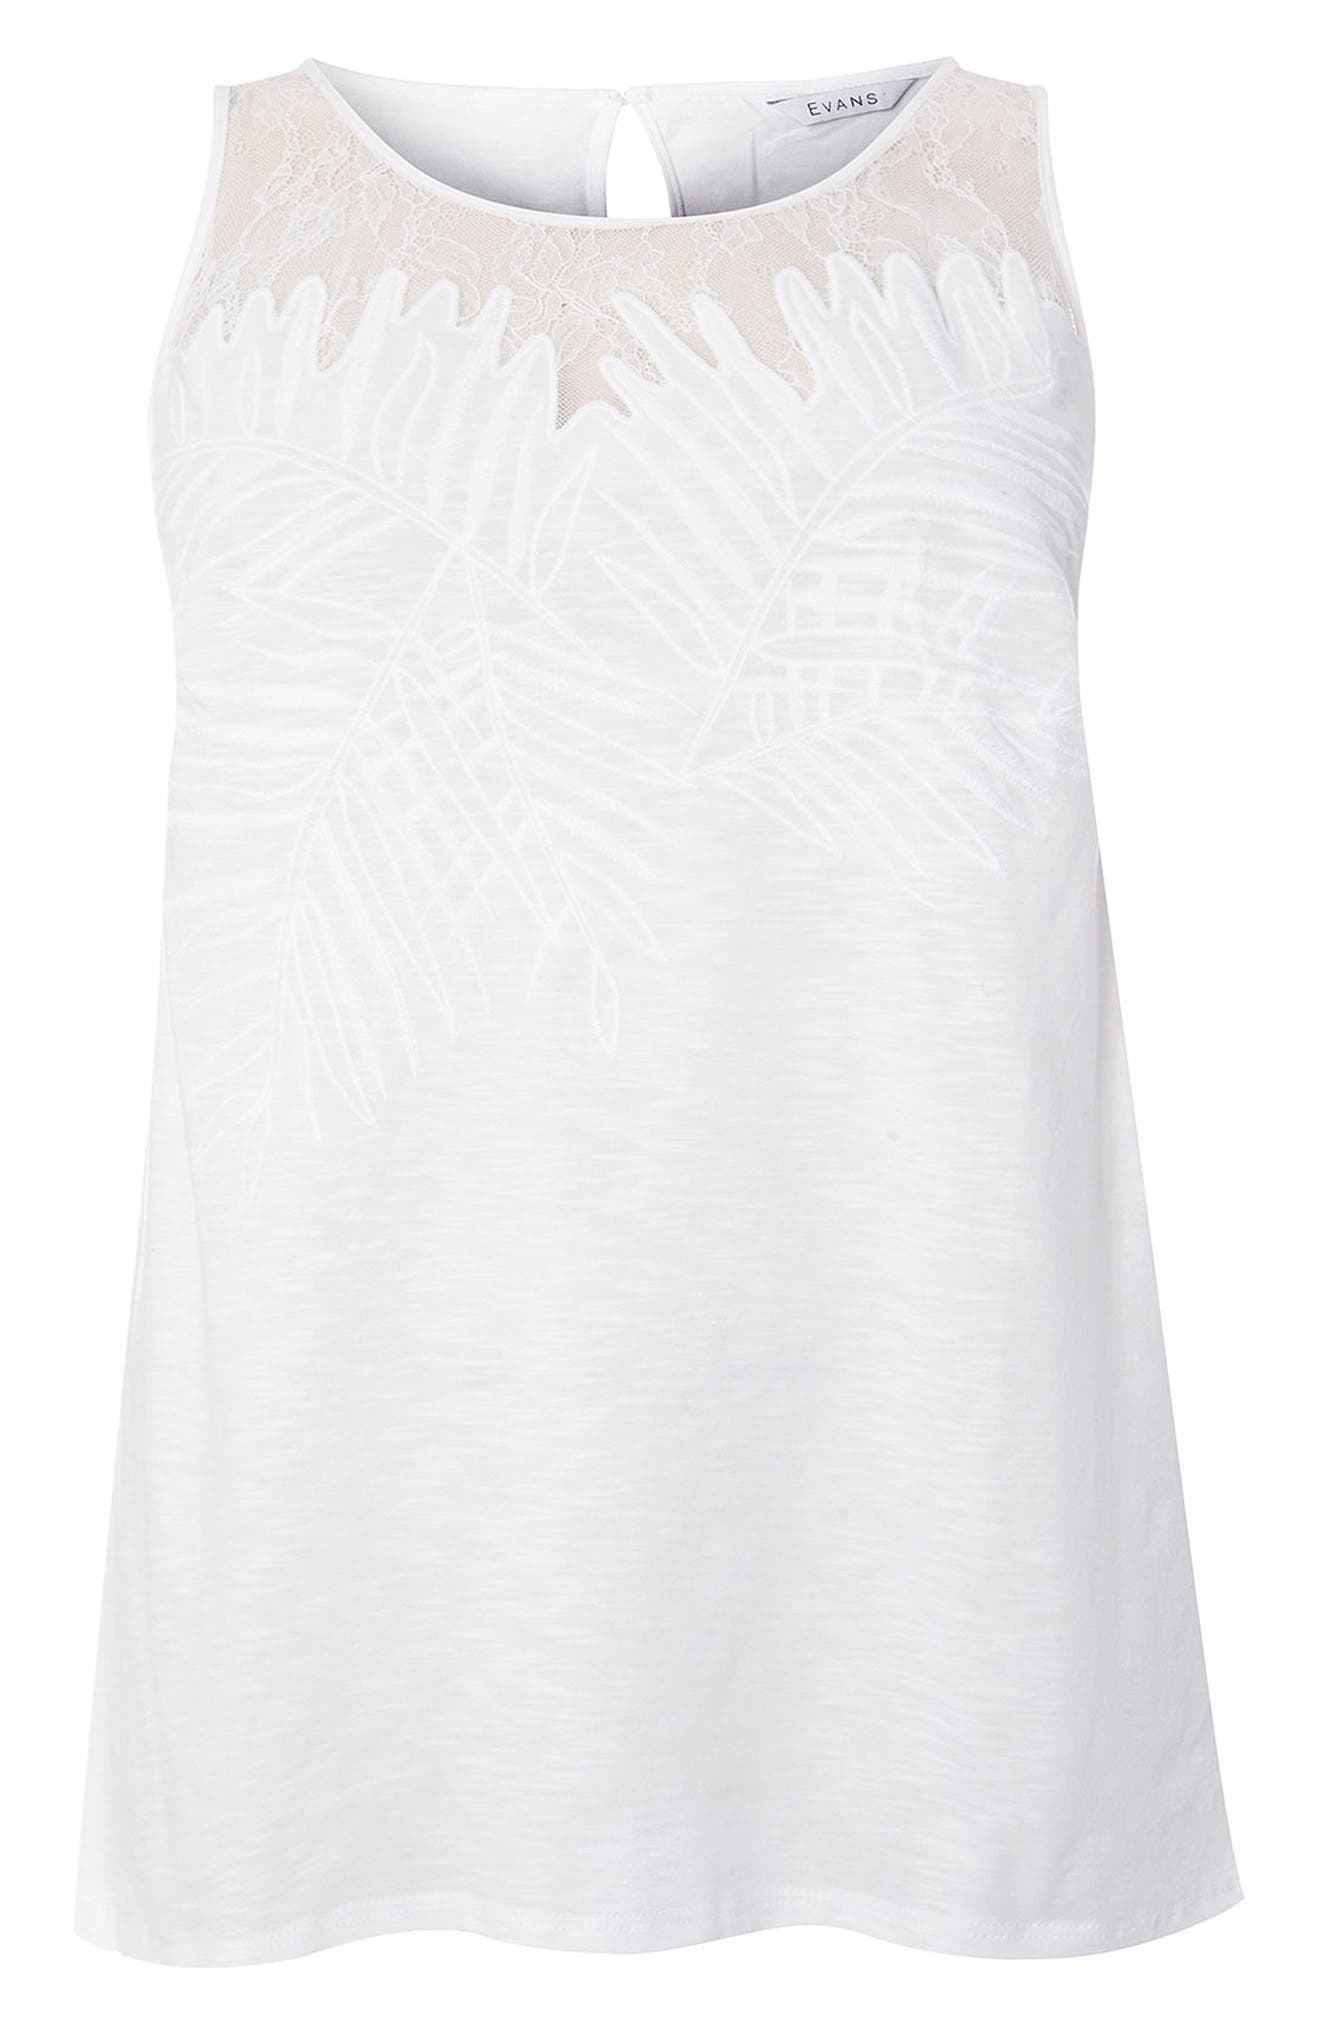 Evans Embroidered Mesh Top (Plus Size)